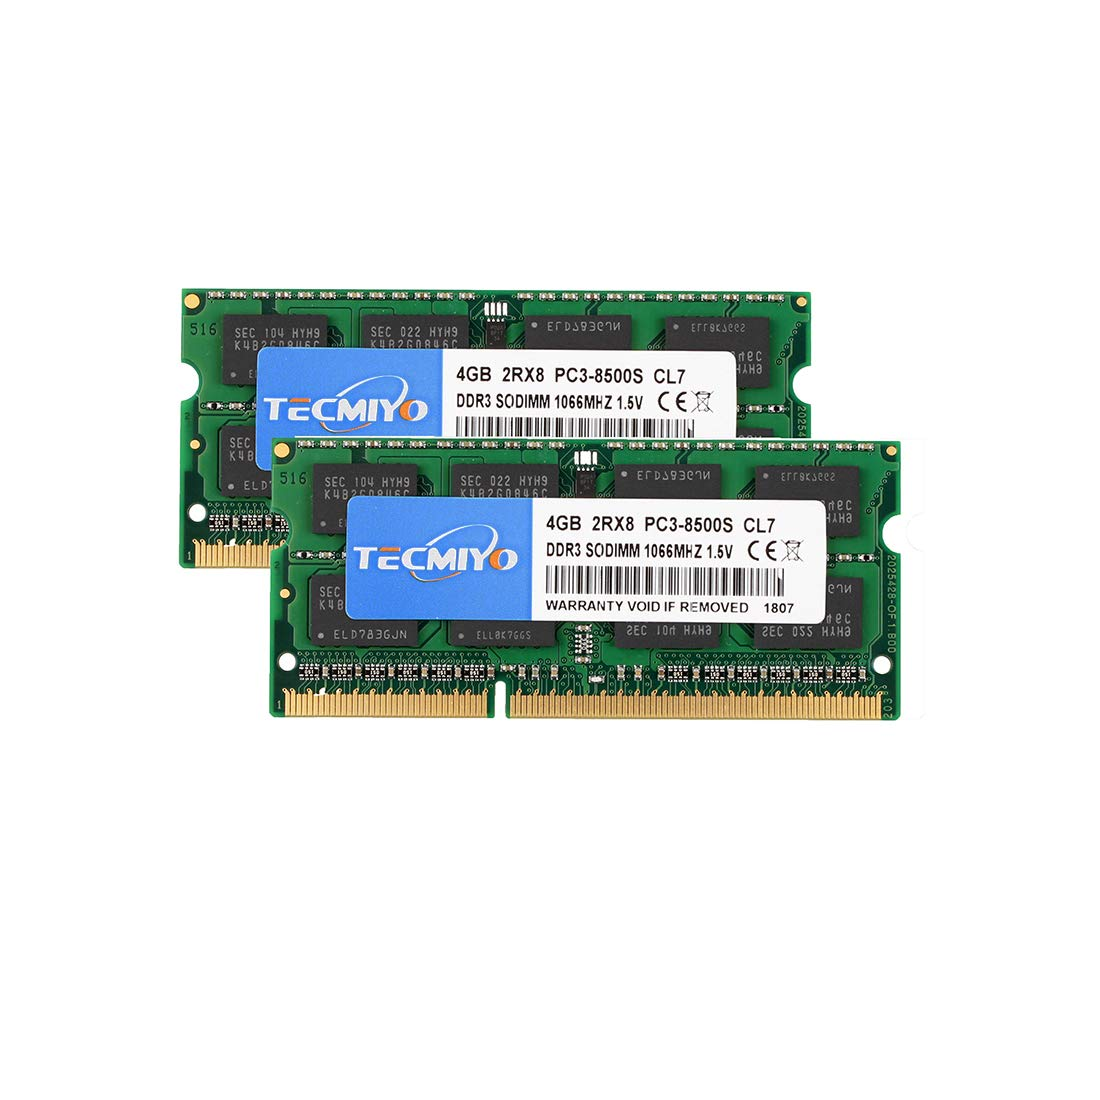 Memoria Ram 8GB TECMIYO Kit (2x4GB) DDR3 1066 SODIMM (PC3-8500) 204 Pin 1.5V CL7 Computer Module